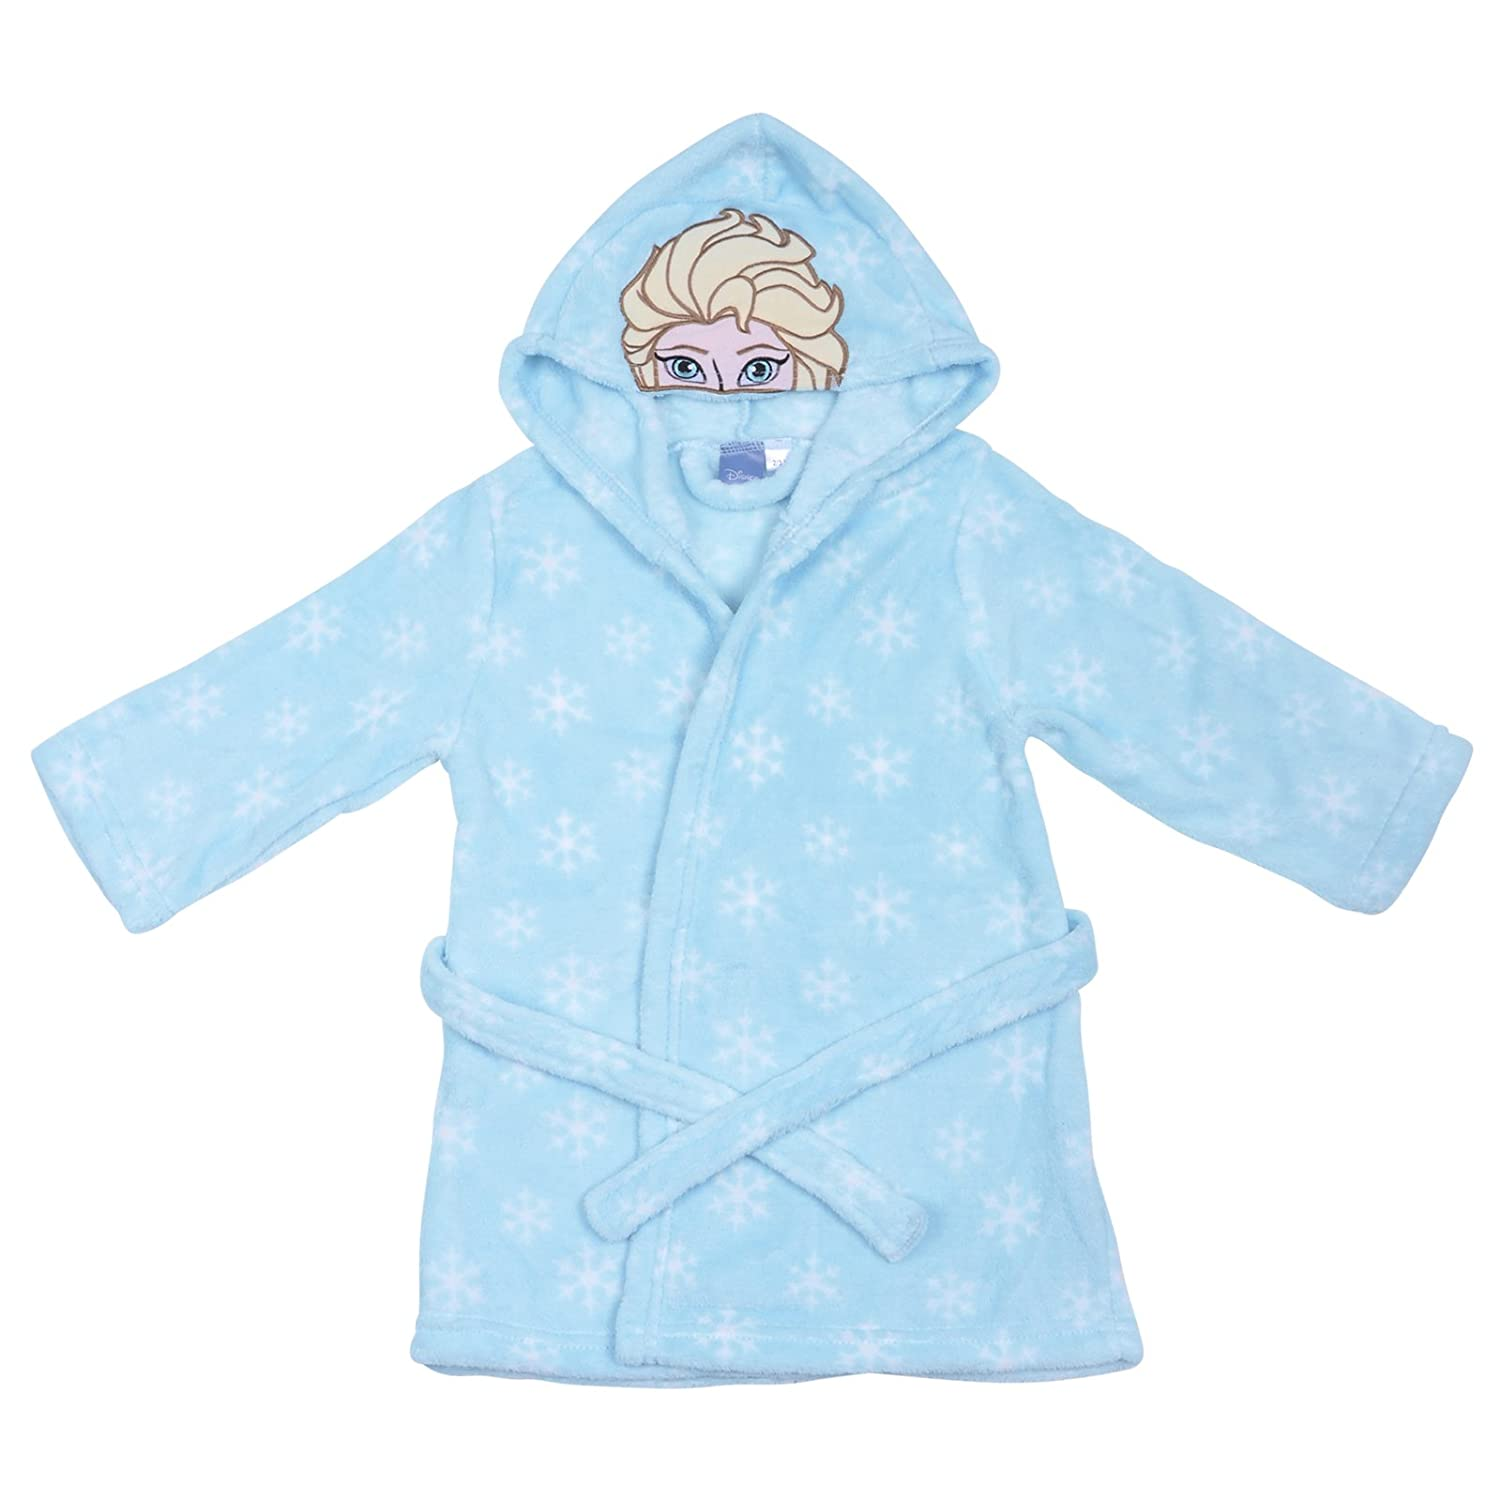 Disney Frozen Turquoise Fleece Dressing Gown Snowflake Girls Hooded Robe Age 2-3